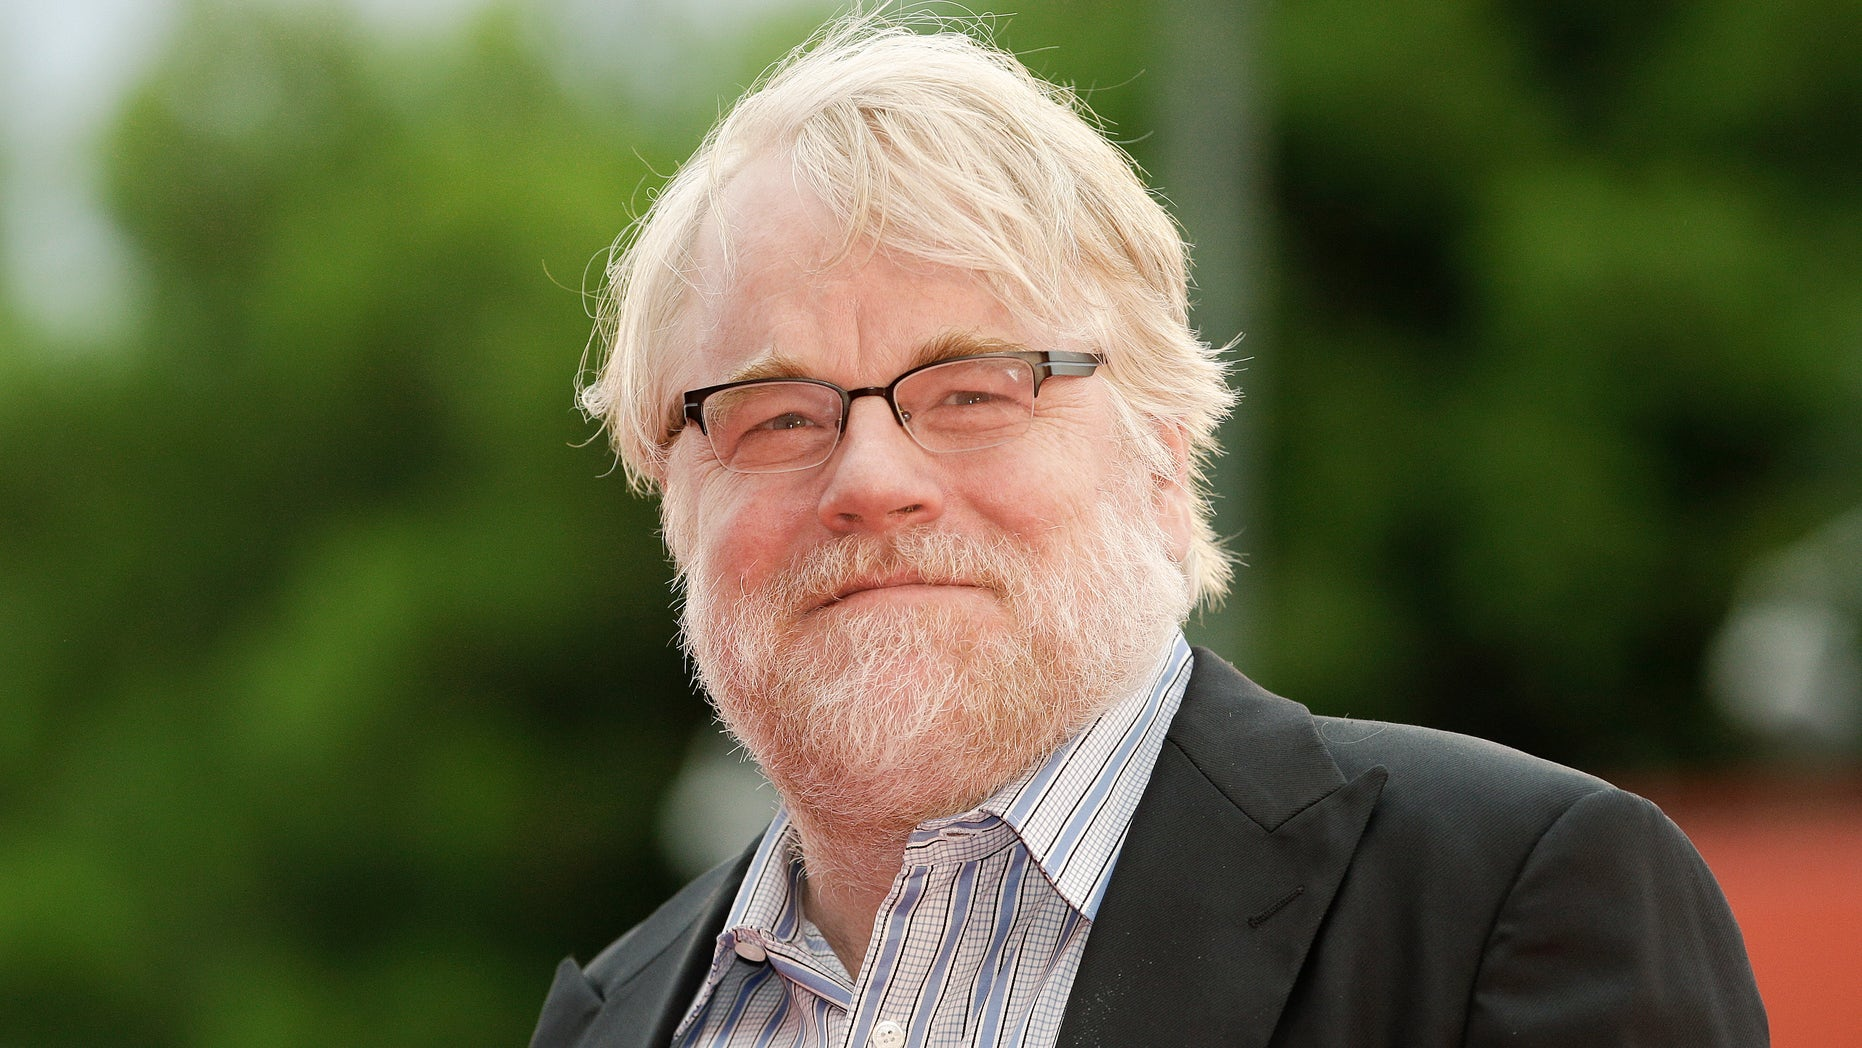 """September 1, 2012.  Philip Seymour Hoffman poses on the red carpet during a screening for the movie """"The Master""""at the 69th Venice Film Festival in Venice."""